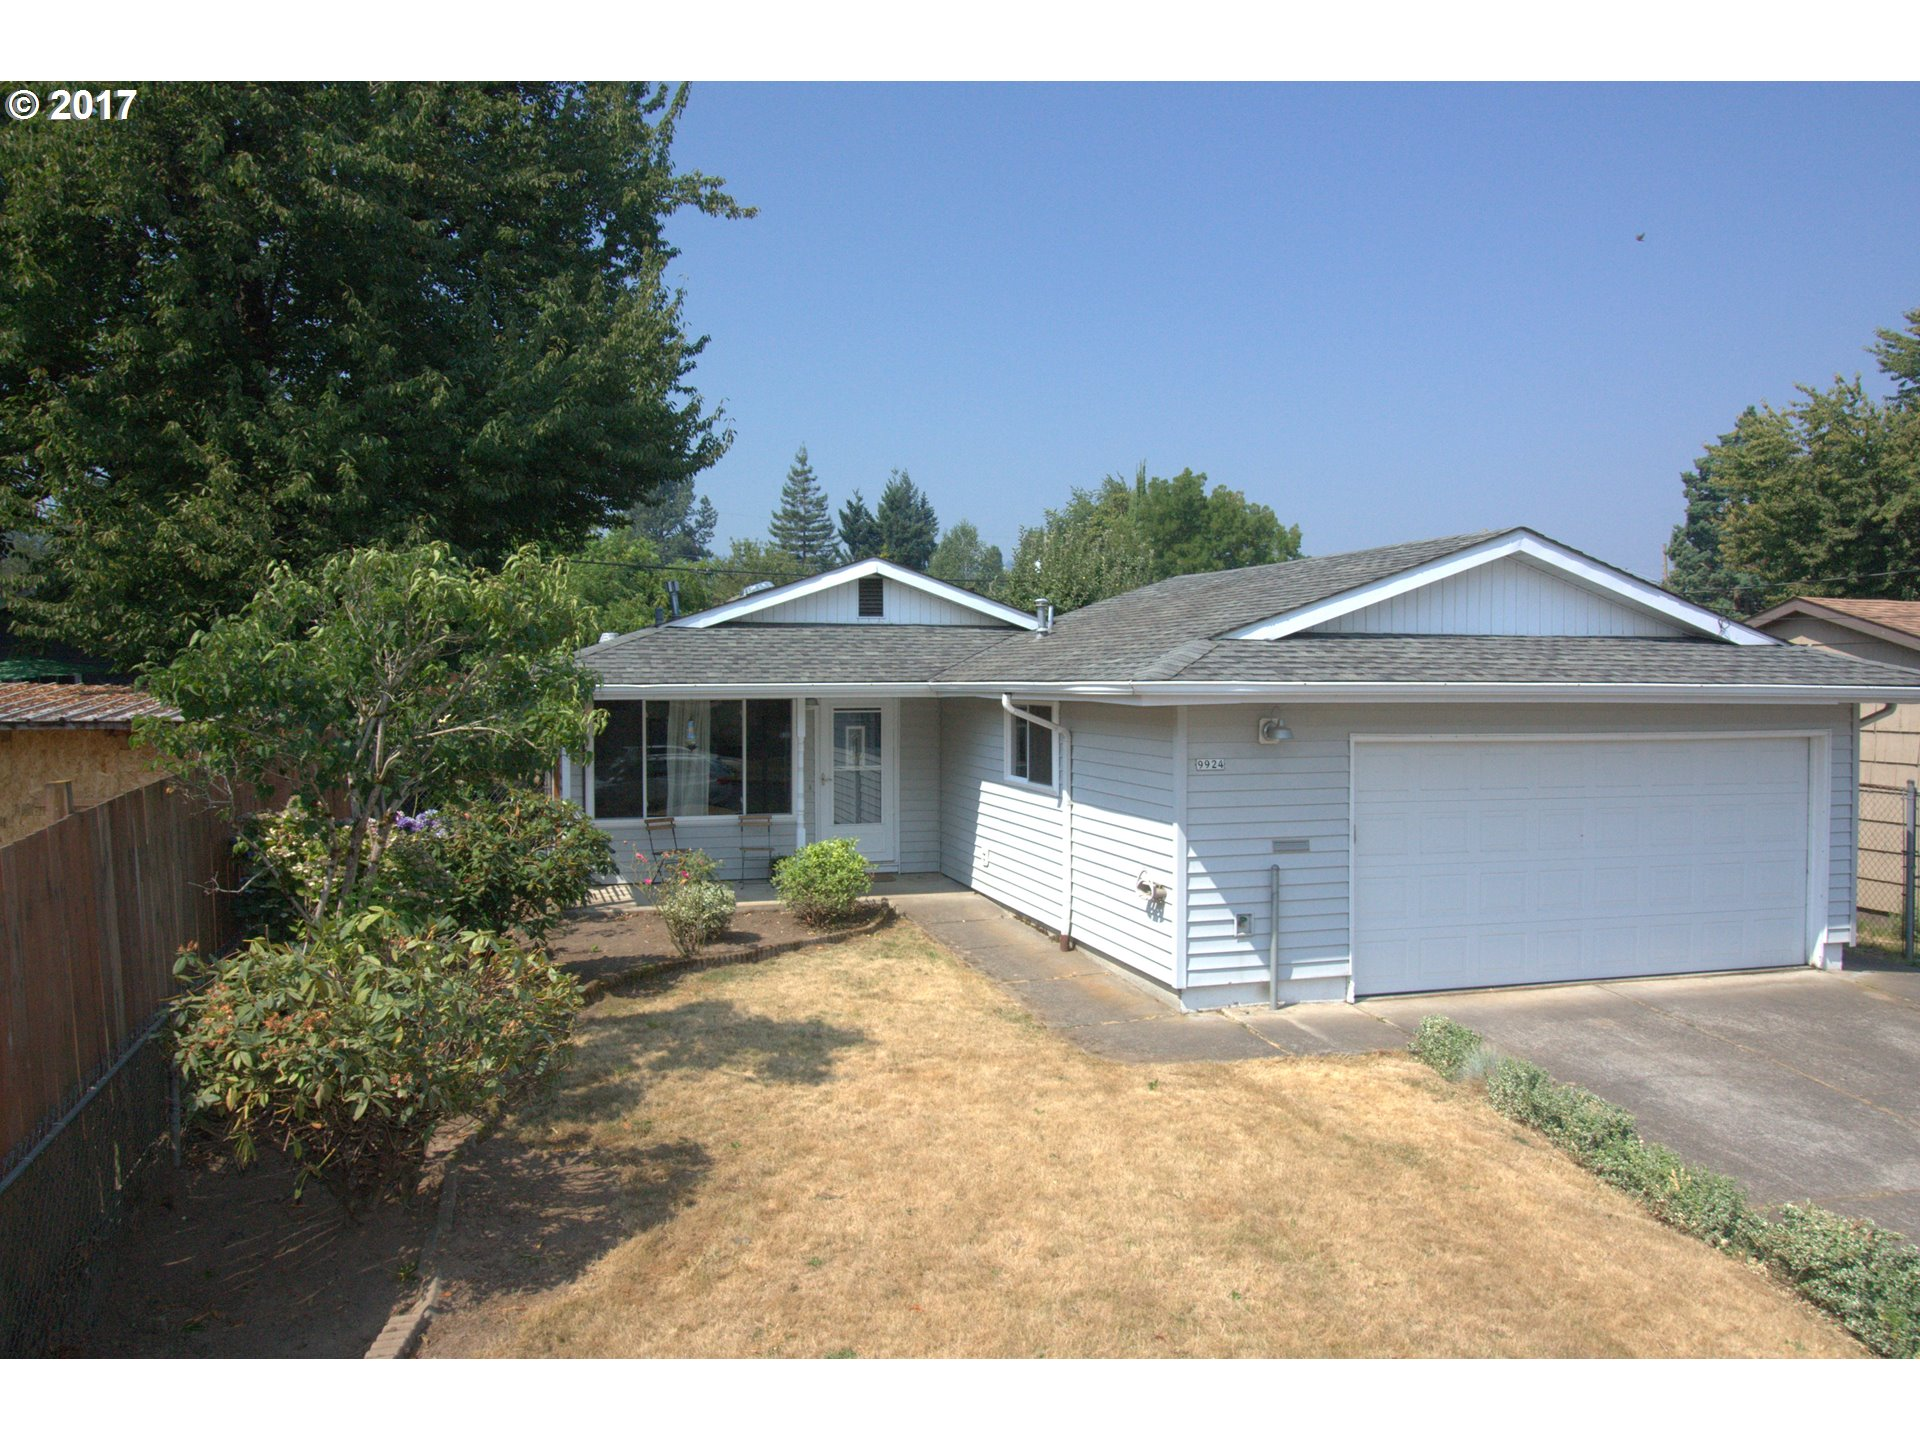 Wonderfully updated and maintained ranch home in excellent St. Johns area near Pier Park & Pool. 3 generous bedrooms w/ample closet space. Beautiful hardwood floors, stainless gas appliances, updated vinyl windows and slider add to the charm of this comfortable home. Updated bath w/granite and double sinks. Slider from dining area opens to large fenced back yard w/large storage/tool shed. 2 car garage! Don't Miss Out on This Great Home!